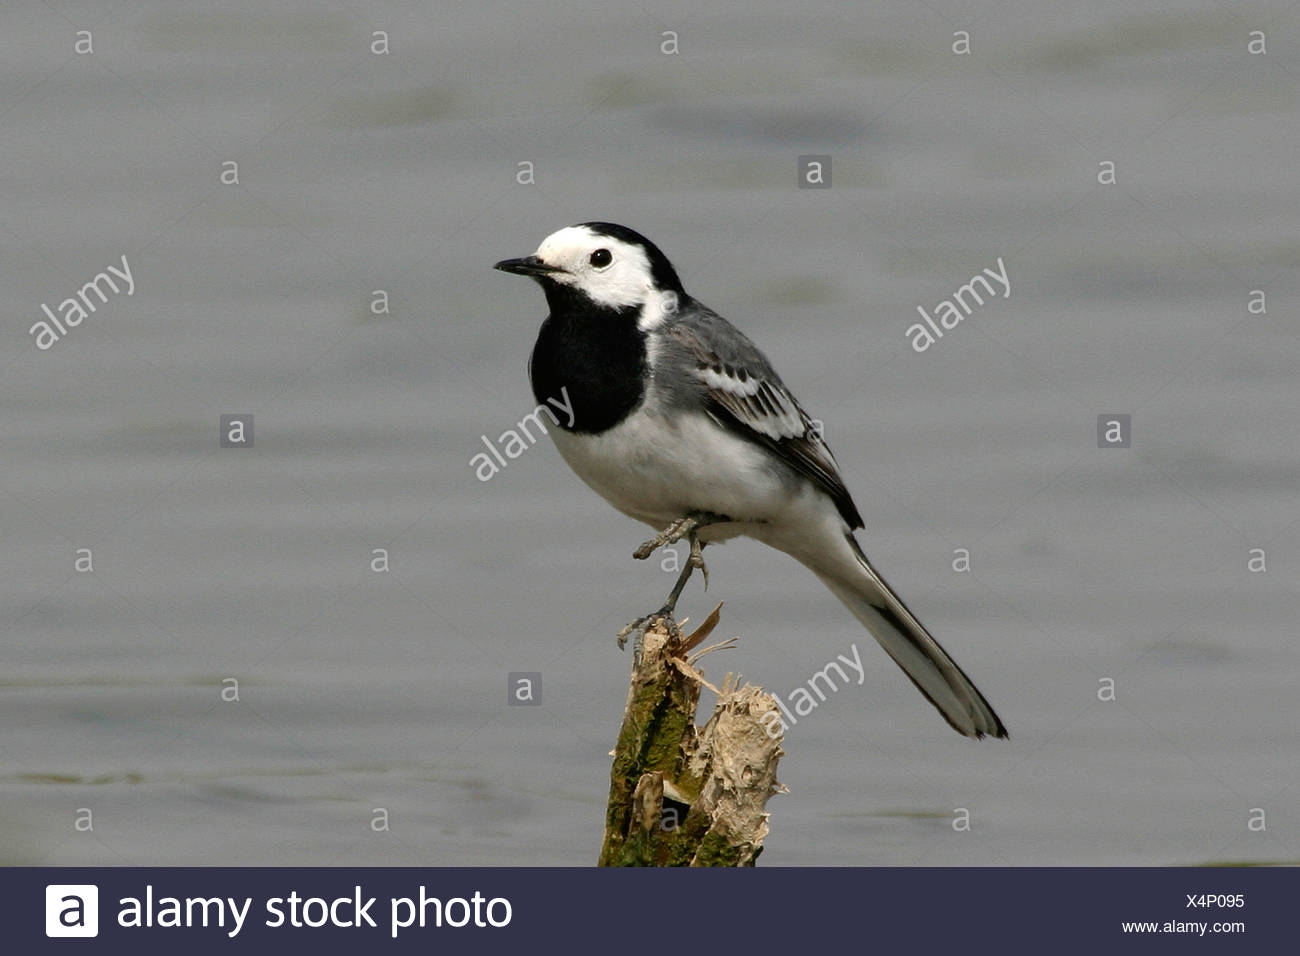 pied wagtail (Motacilla alba), sitting on one leg on a wood in front of water, Germany - Stock Image